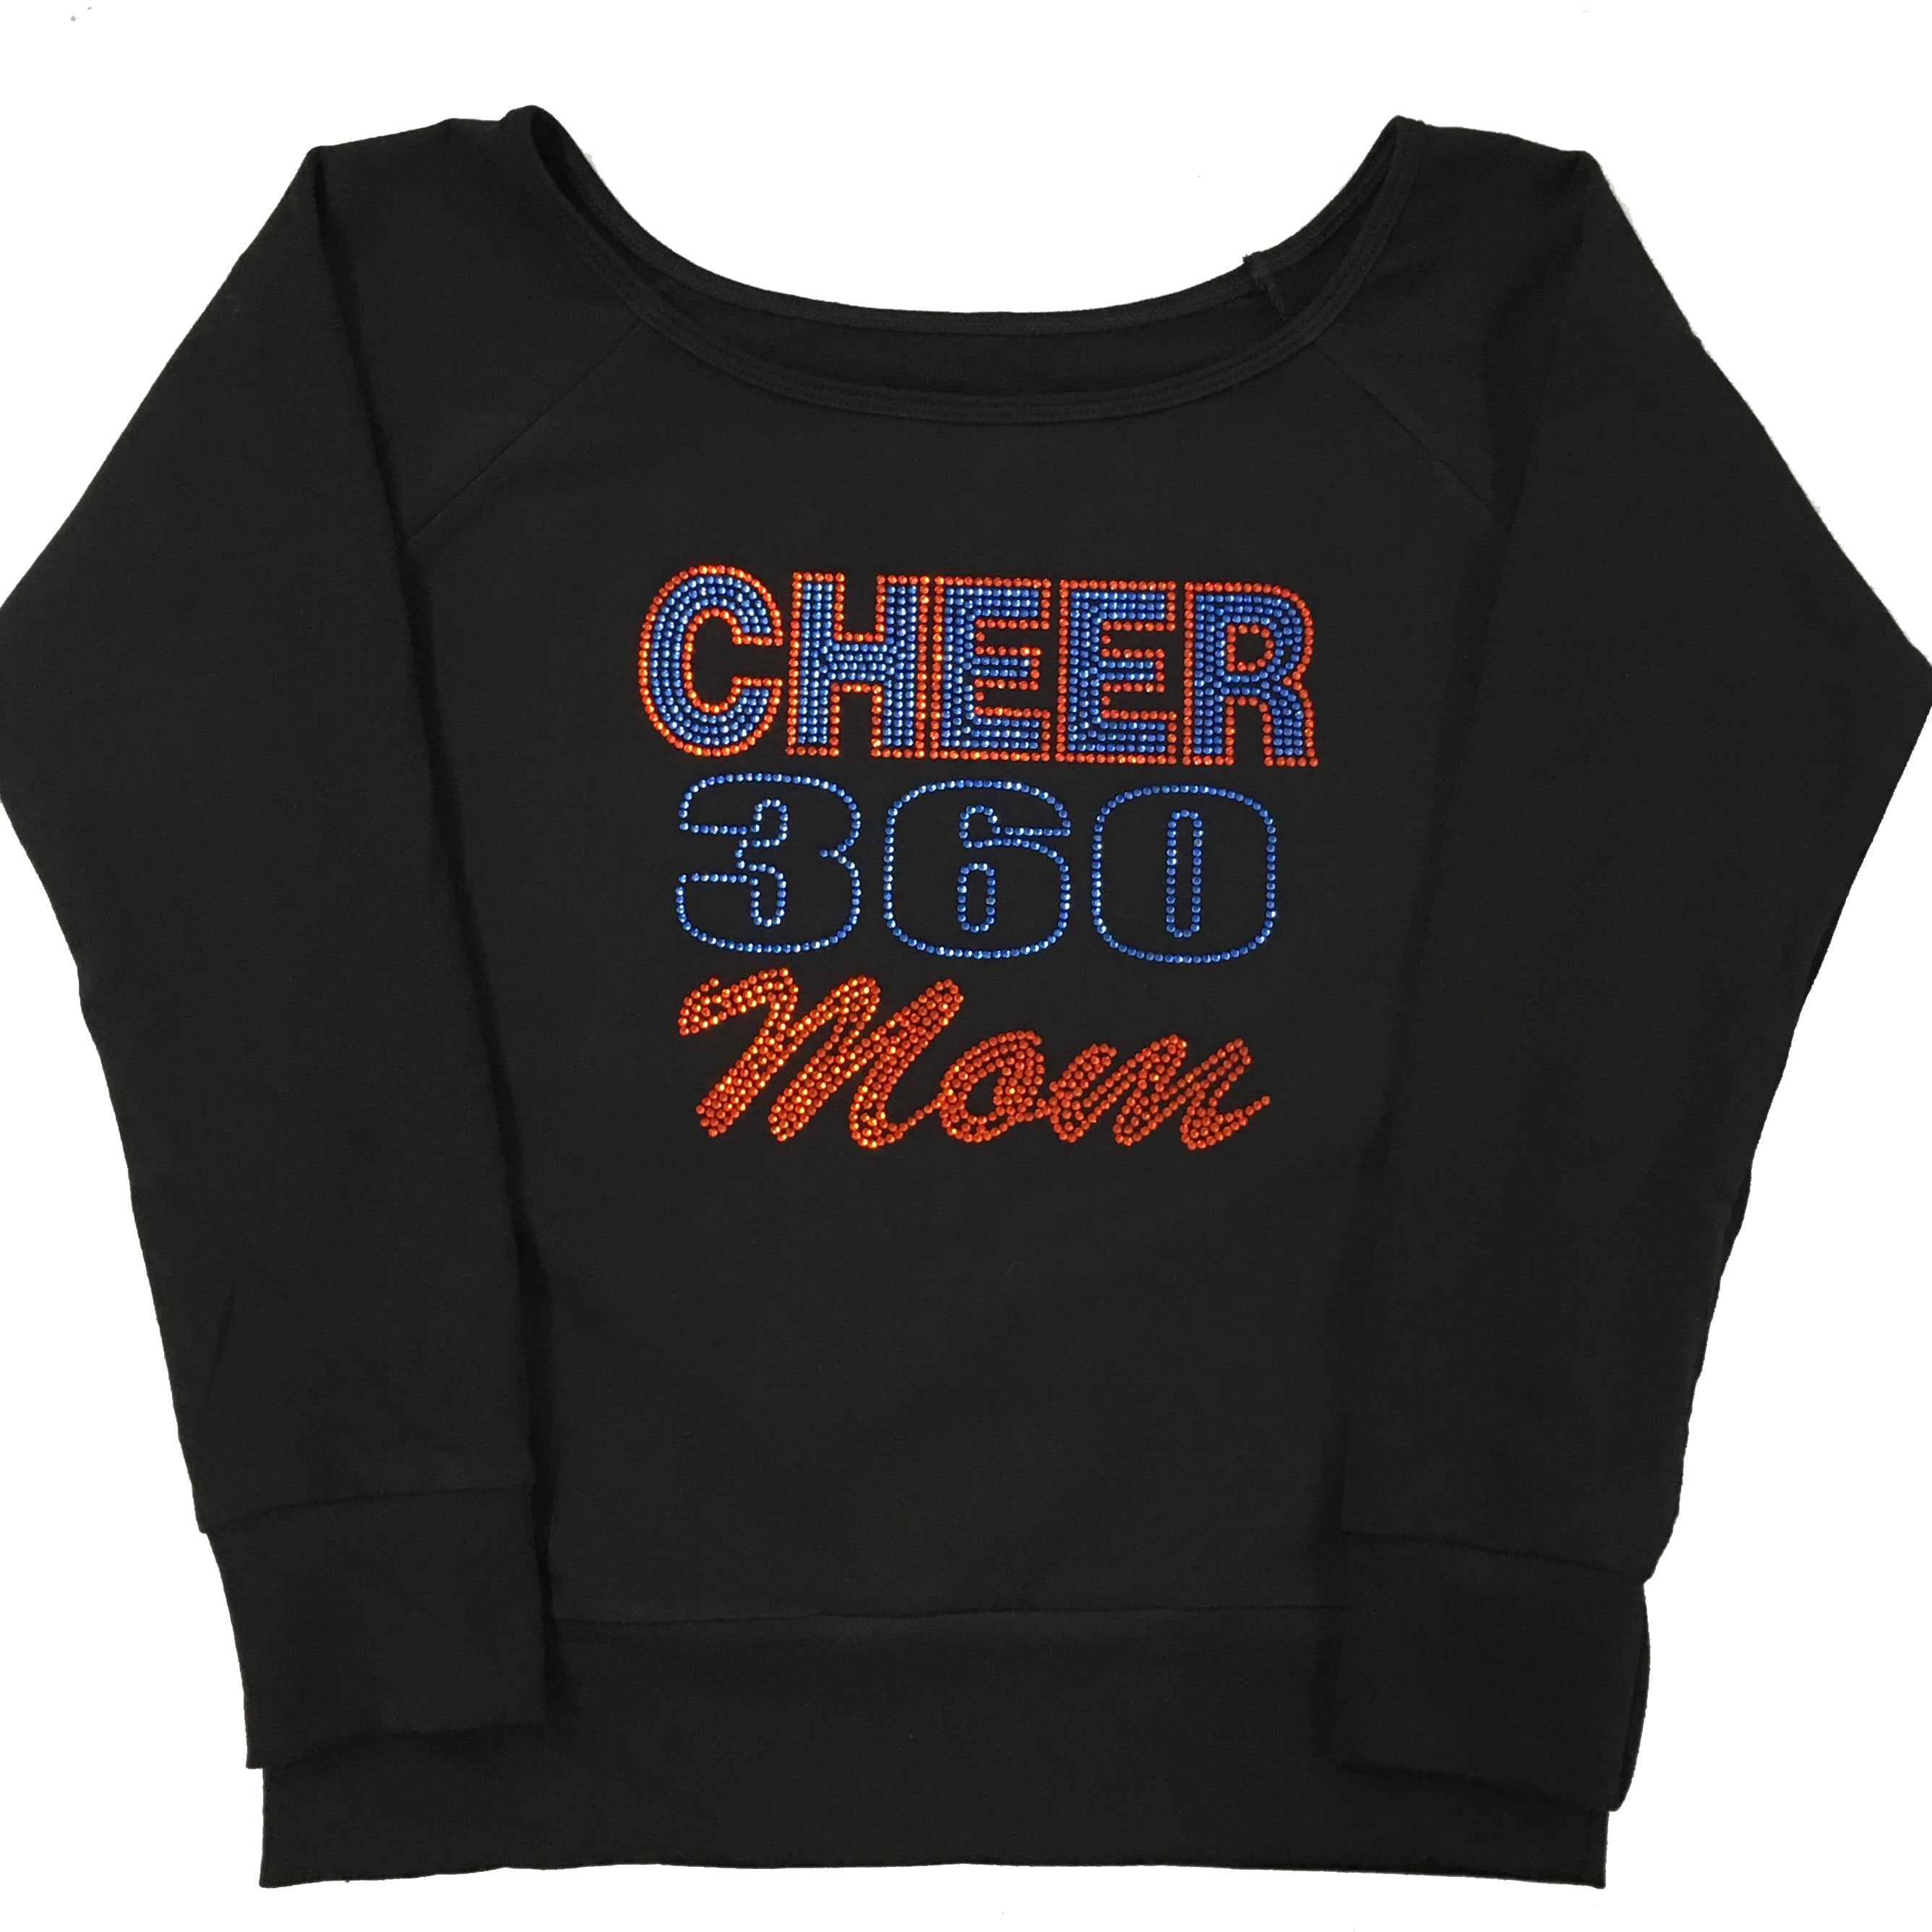 Women's Cotton Long Sleeve Top with CHEER 360 Mom Rhinestones